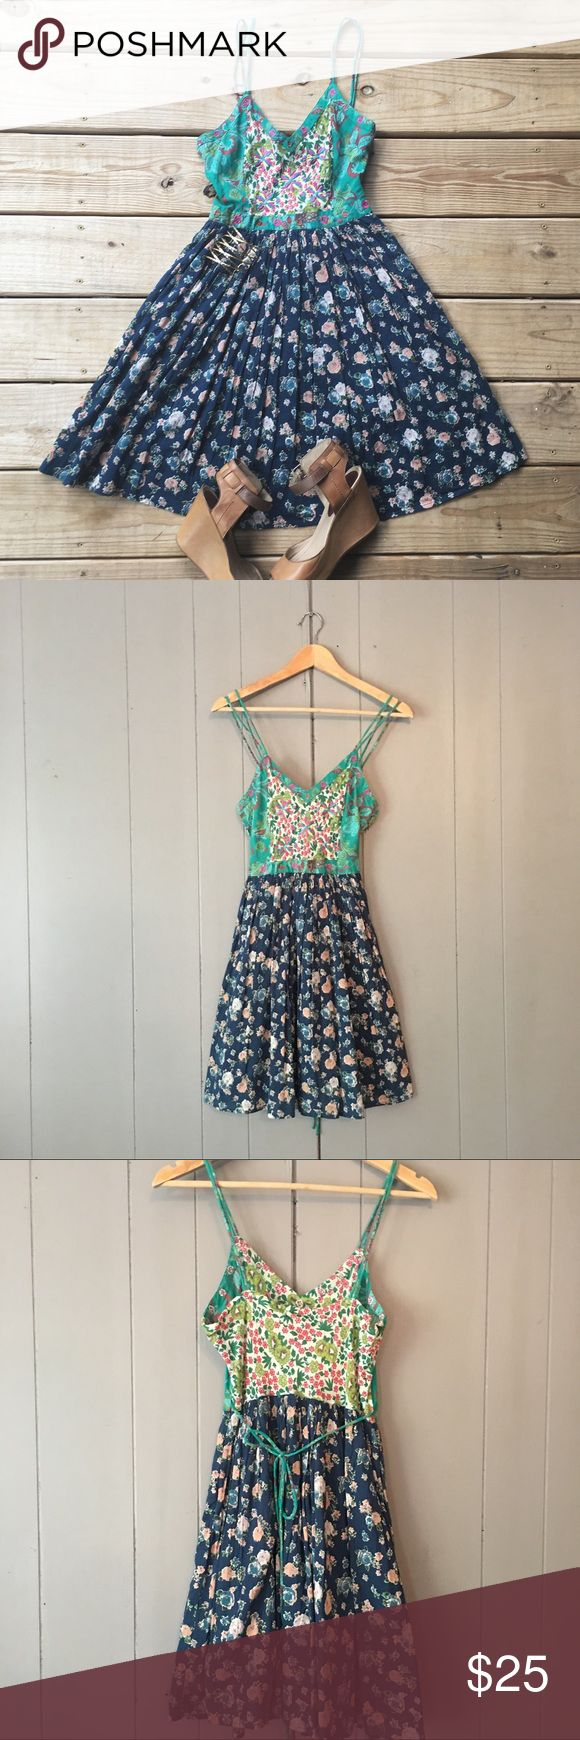 """Gorgeous Patrons of Peace floral sun dress This mini Fit & Flare is perfect for that summer boho chic look. The details and colors on this dress are simply beautiful. Skirt is lined and pleated. Double spaghetti straps and ties in the back. Zips on the side. This dress is in excellent used condition! 100% cotton. Armpit to armpit is 16"""". Top of strap to bottom hem (length) is 35"""".***Stock photo is not the same dress but the same style. Buckle Dresses Mini"""